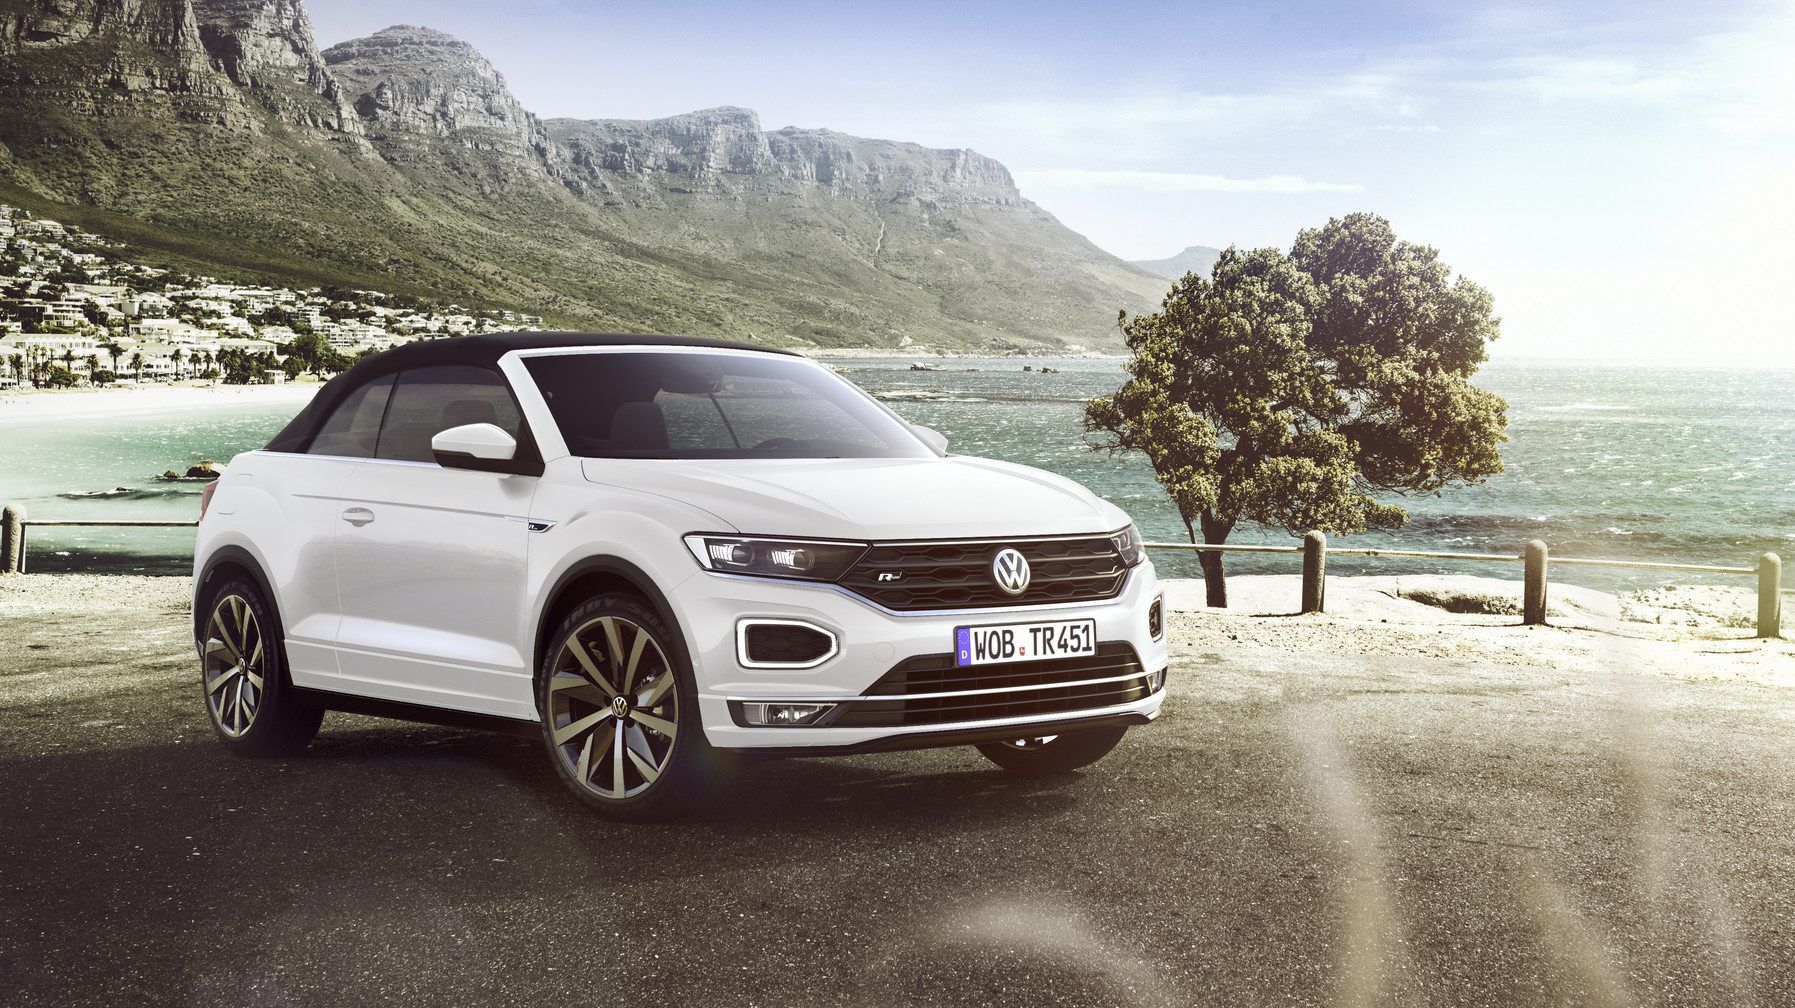 The new Volkswagen T-Roc Cabriolet